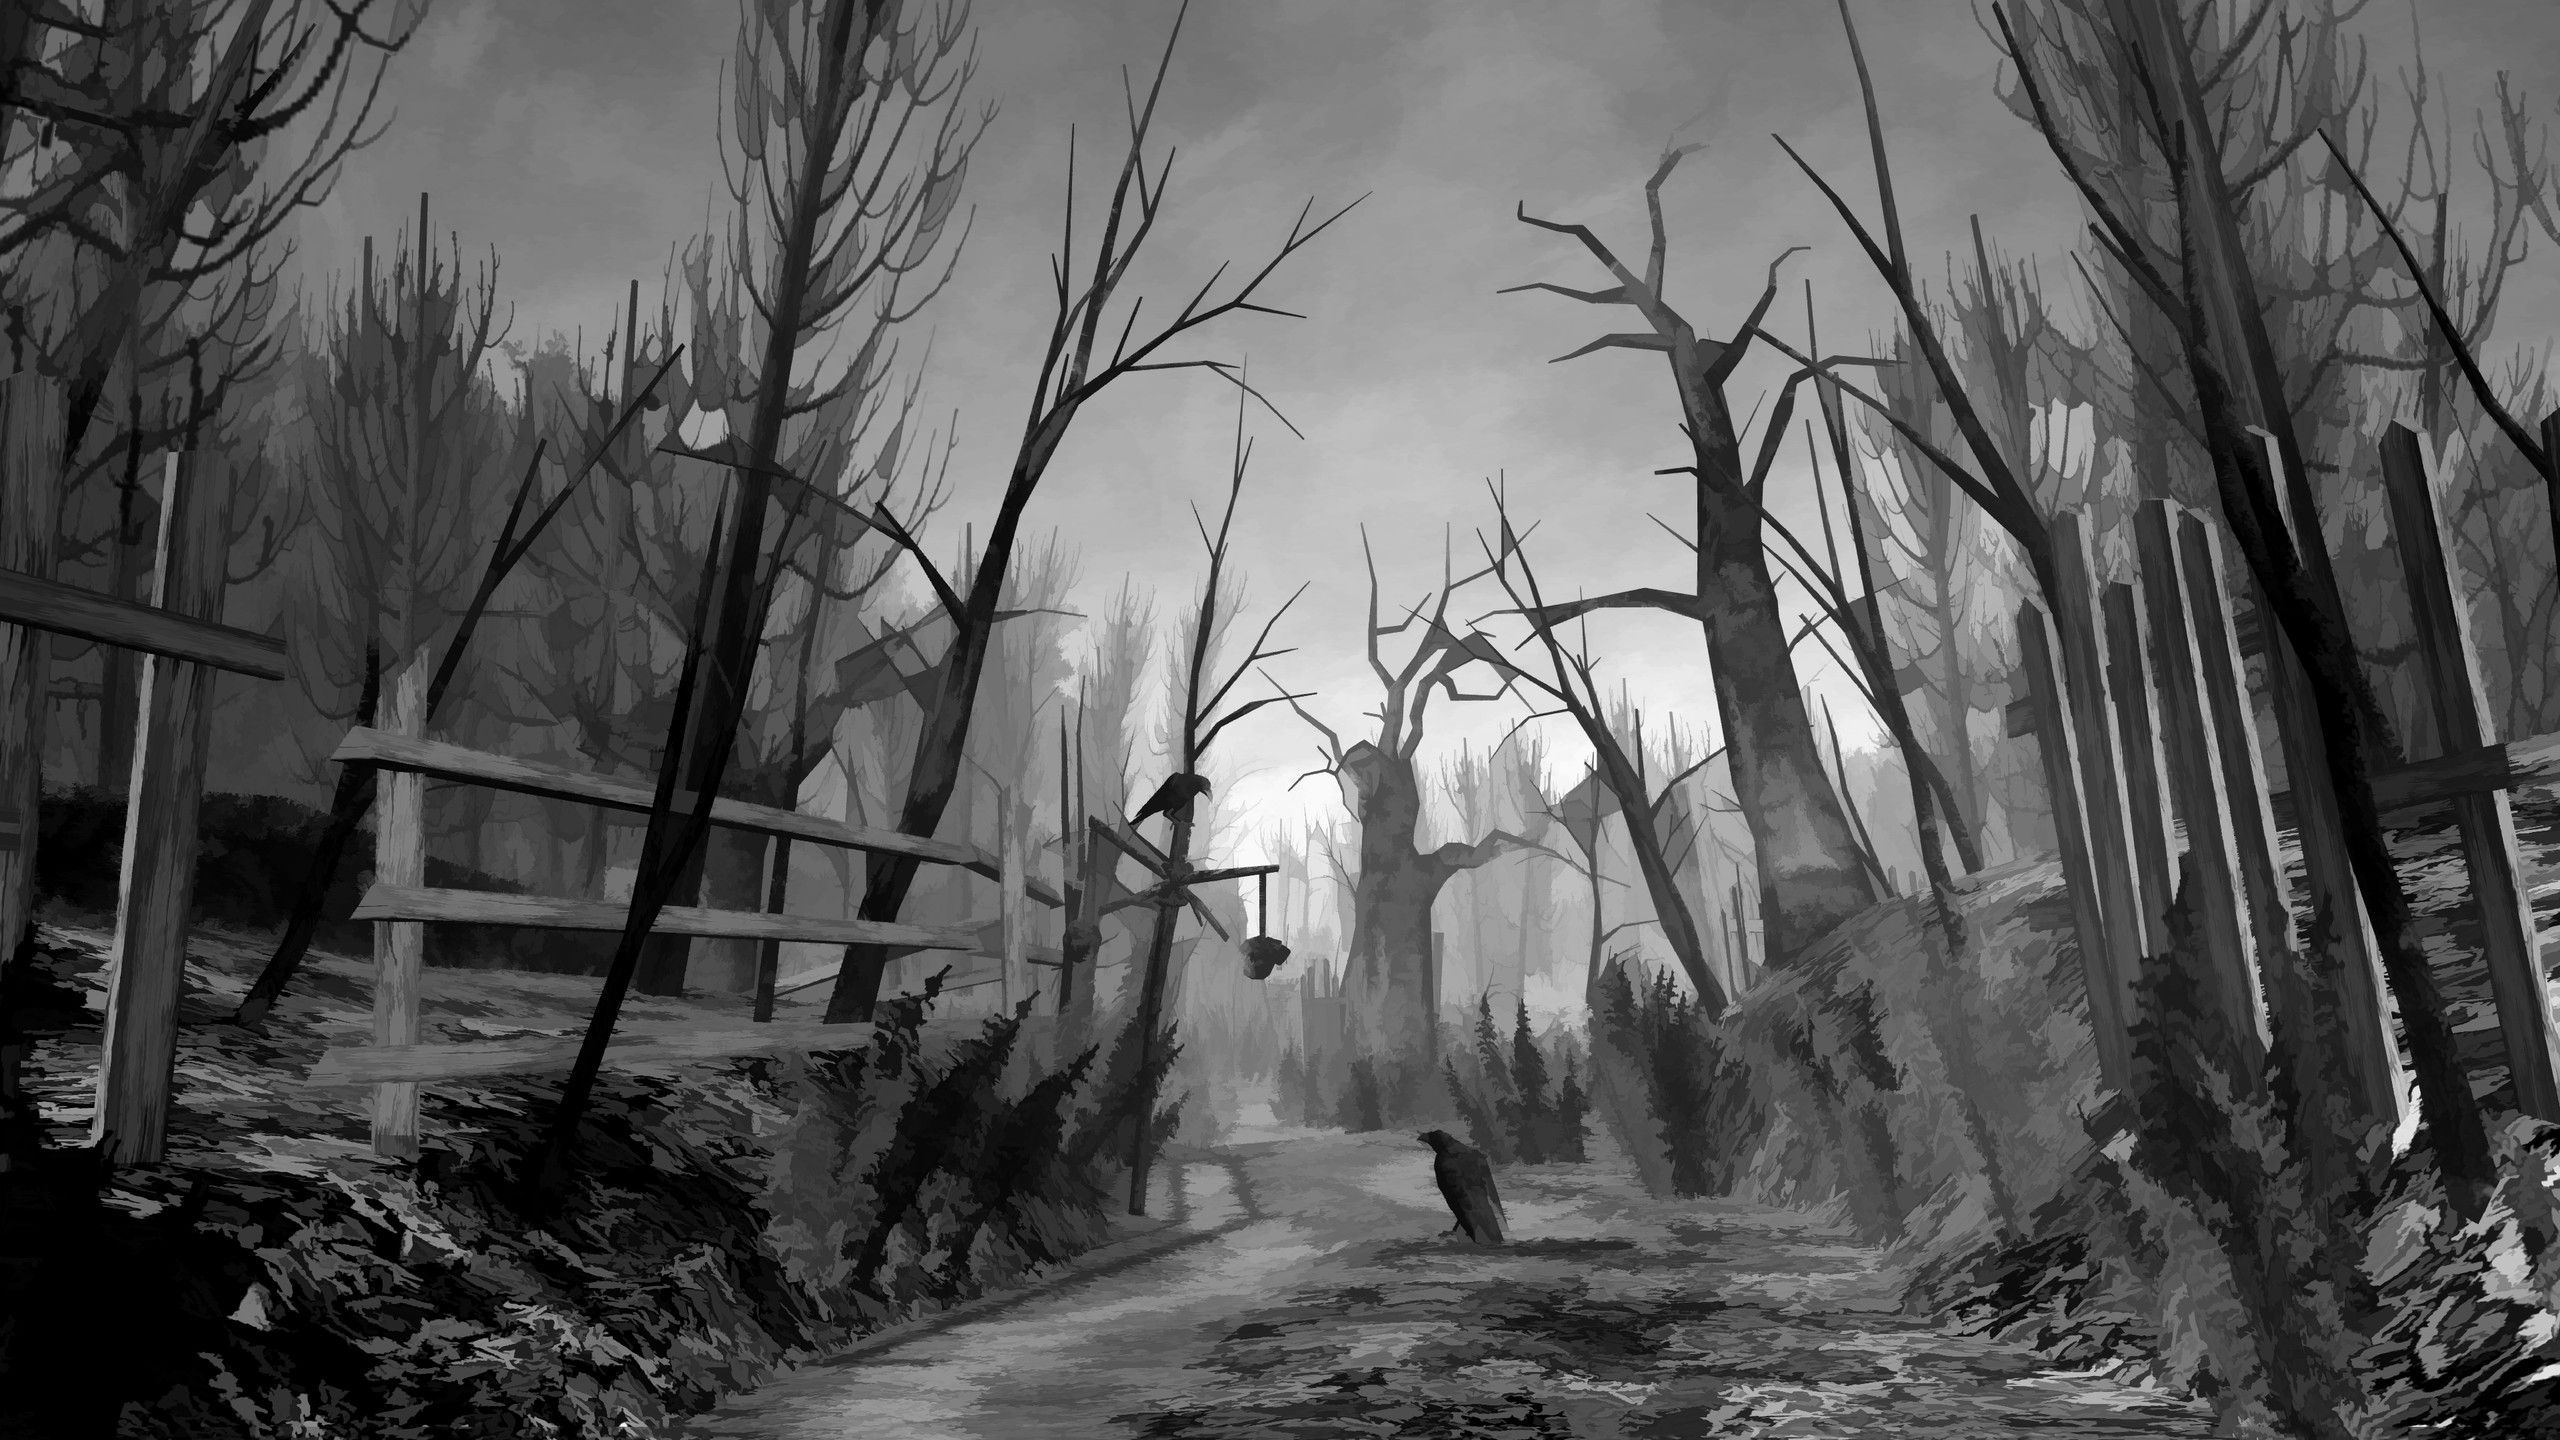 Creepy forest wallpaper 17491 2560x1440